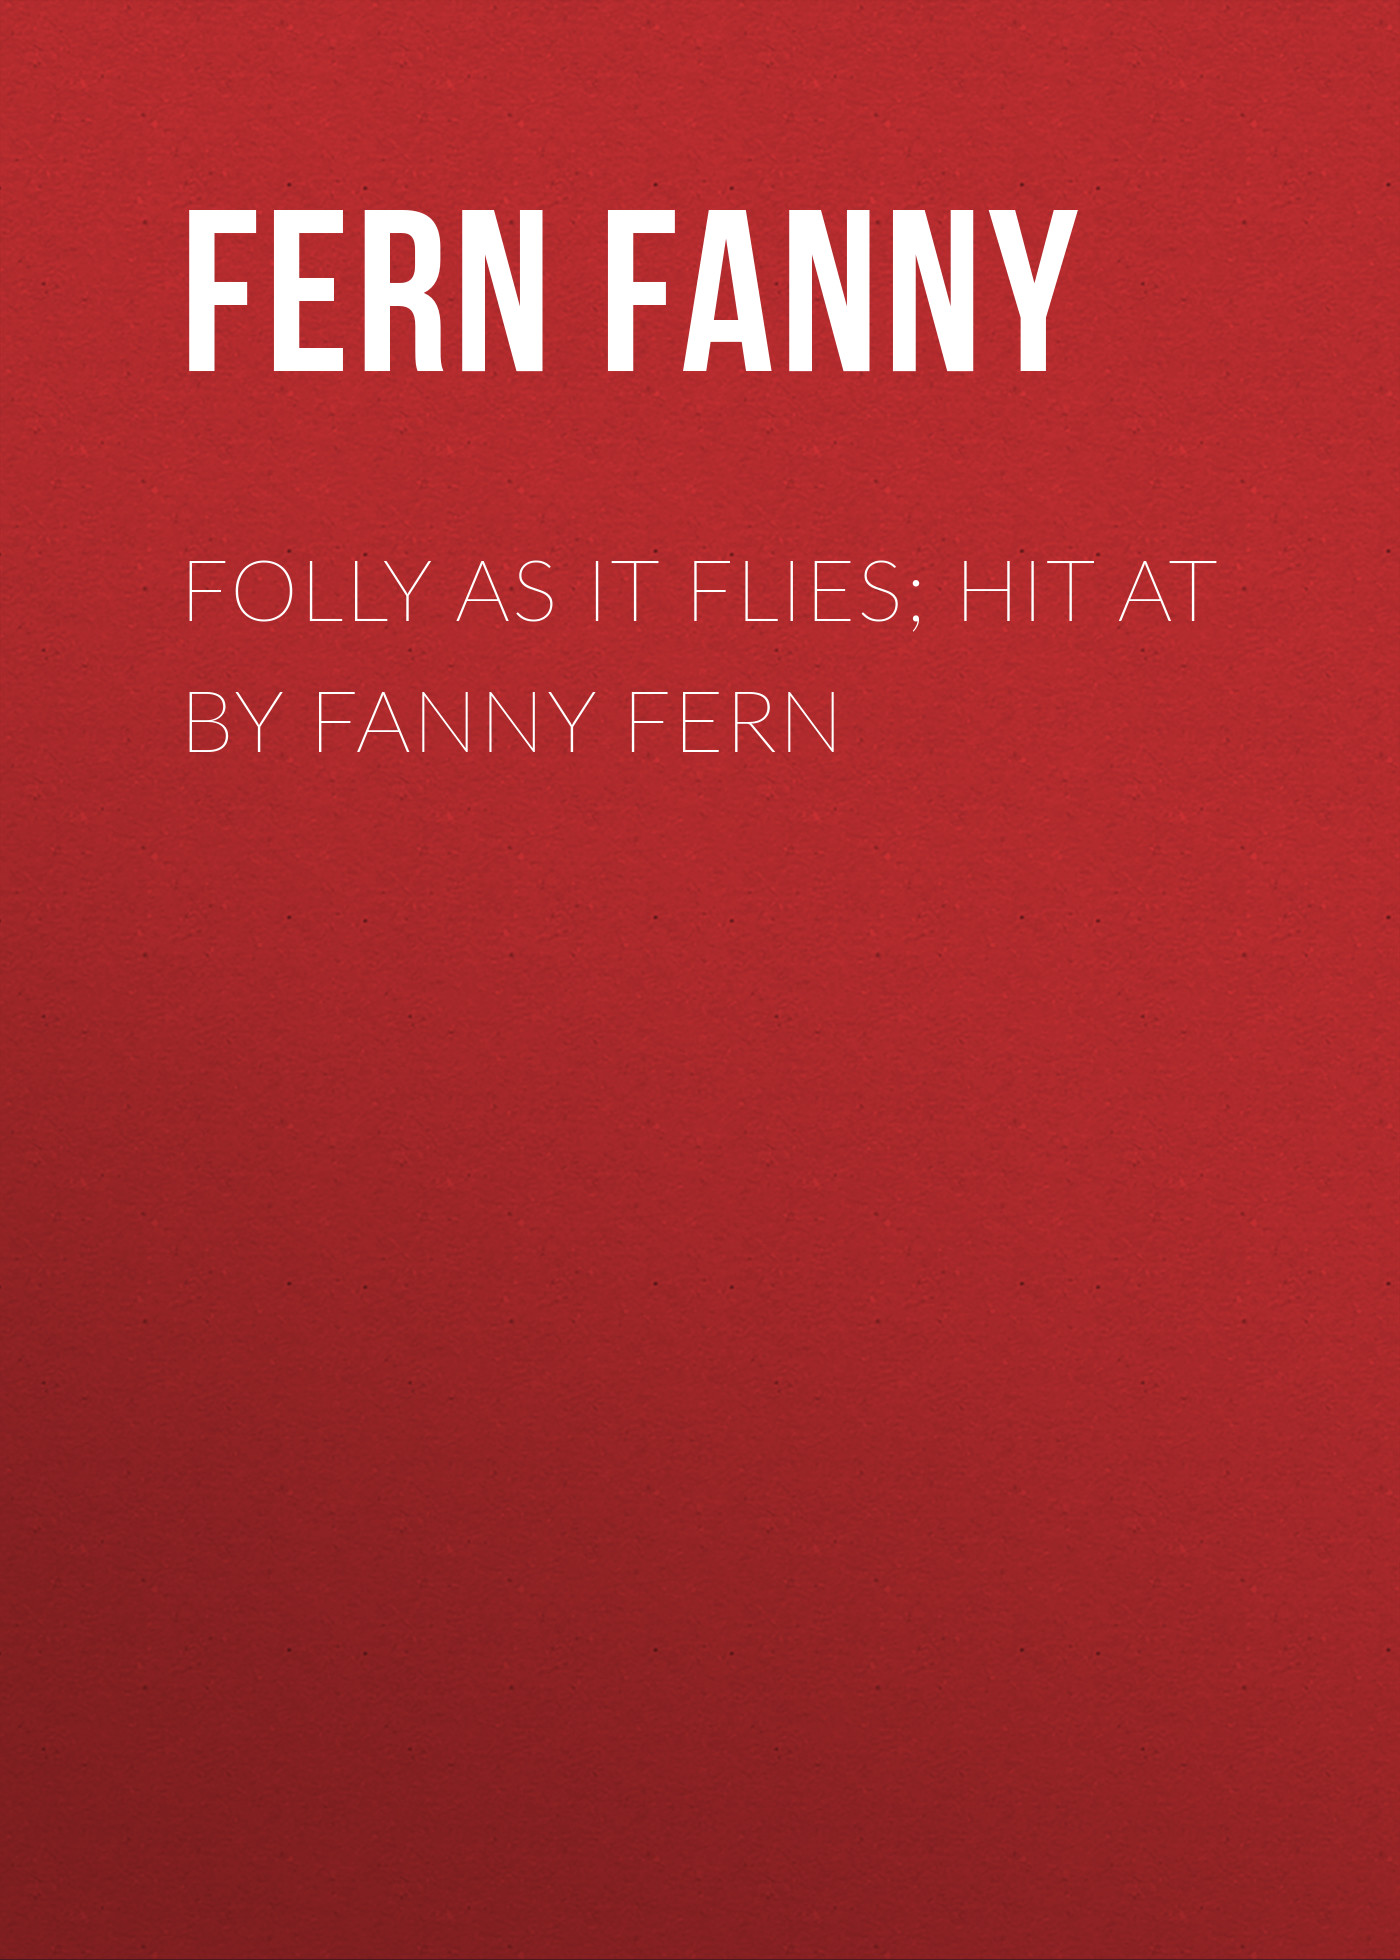 Fern Fanny Folly as It Flies; Hit at by Fanny Fern